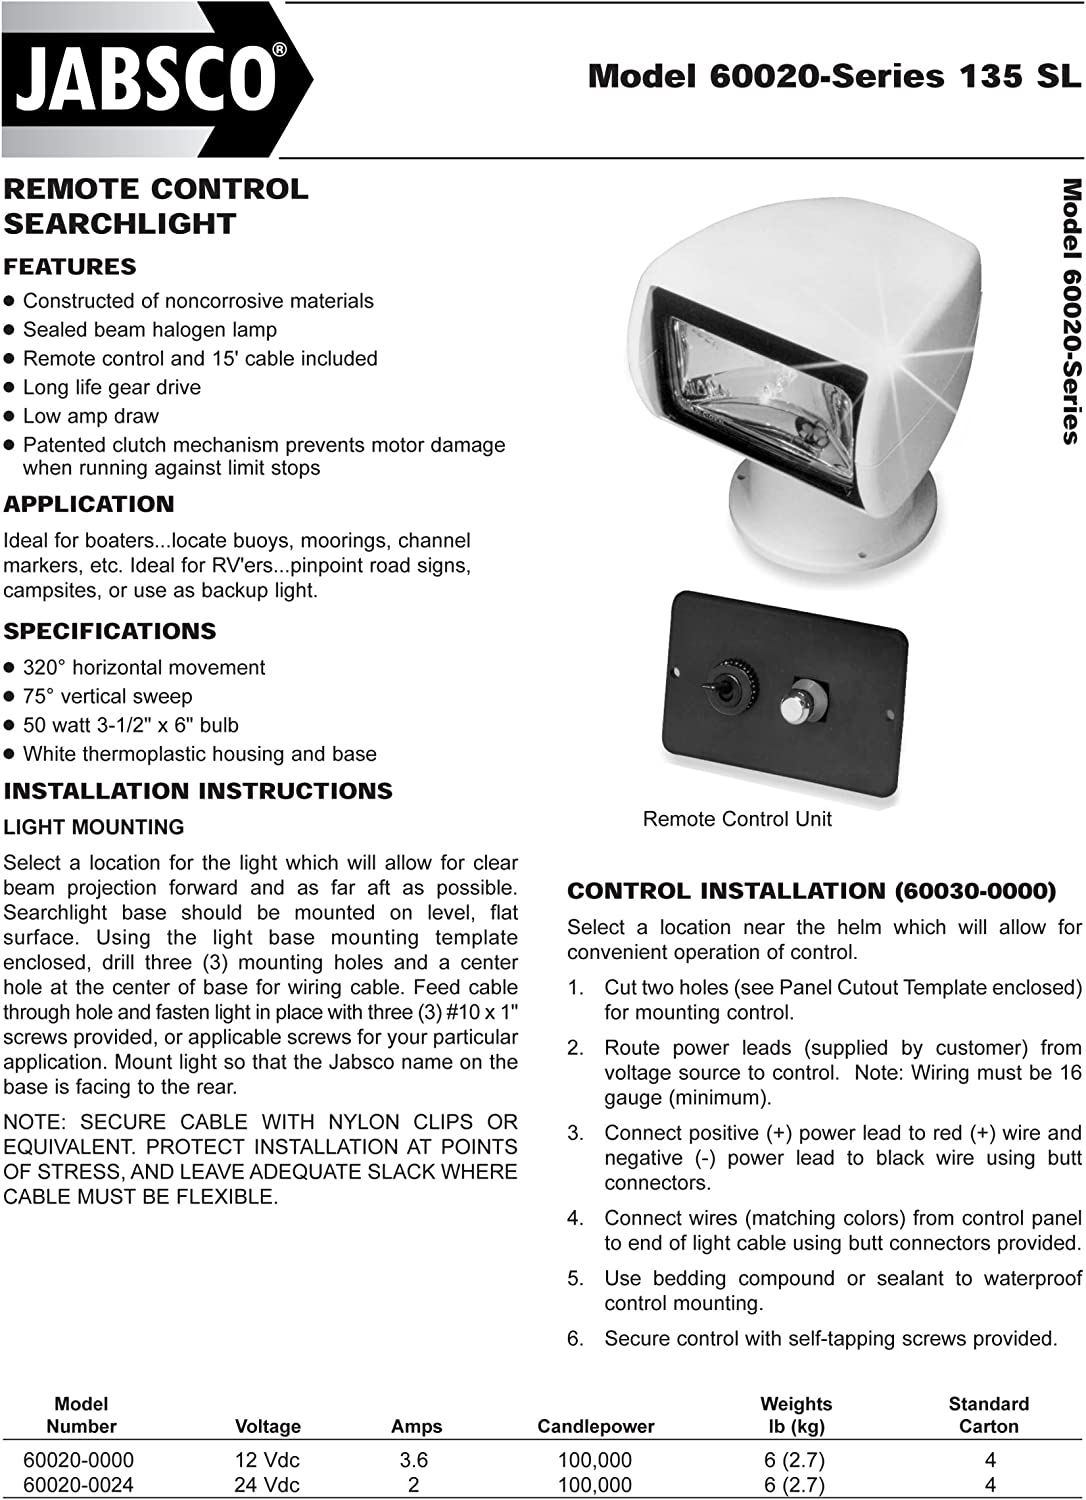 Jabsco Searchlight Wiring Diagram from images-na.ssl-images-amazon.com